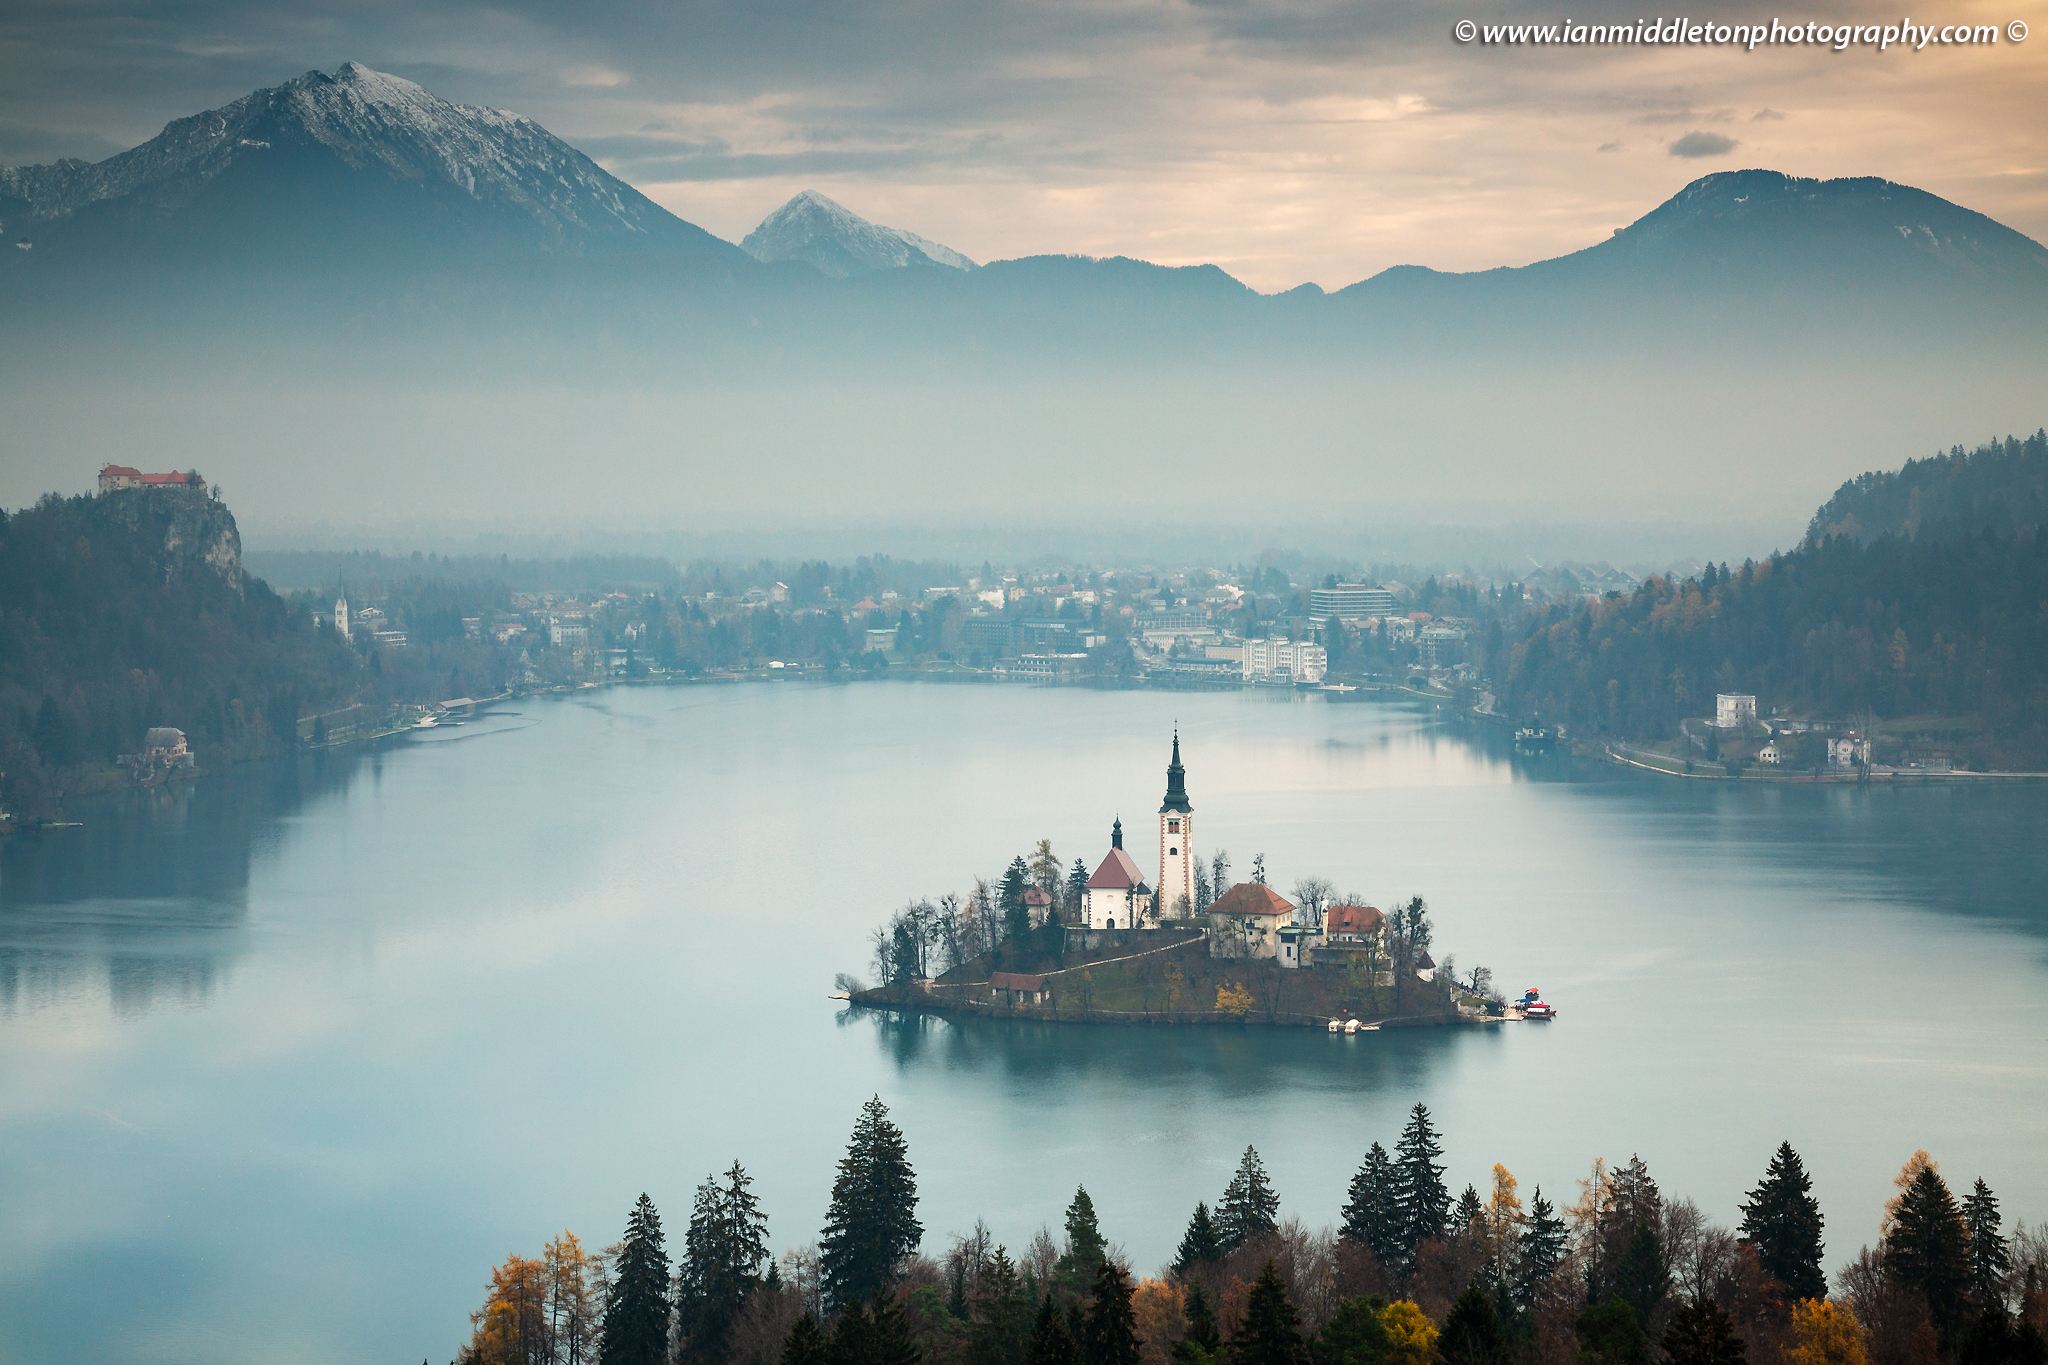 Morning view across Lake Bled to the island church and clifftop castle from Ojstrica, Slovenia.